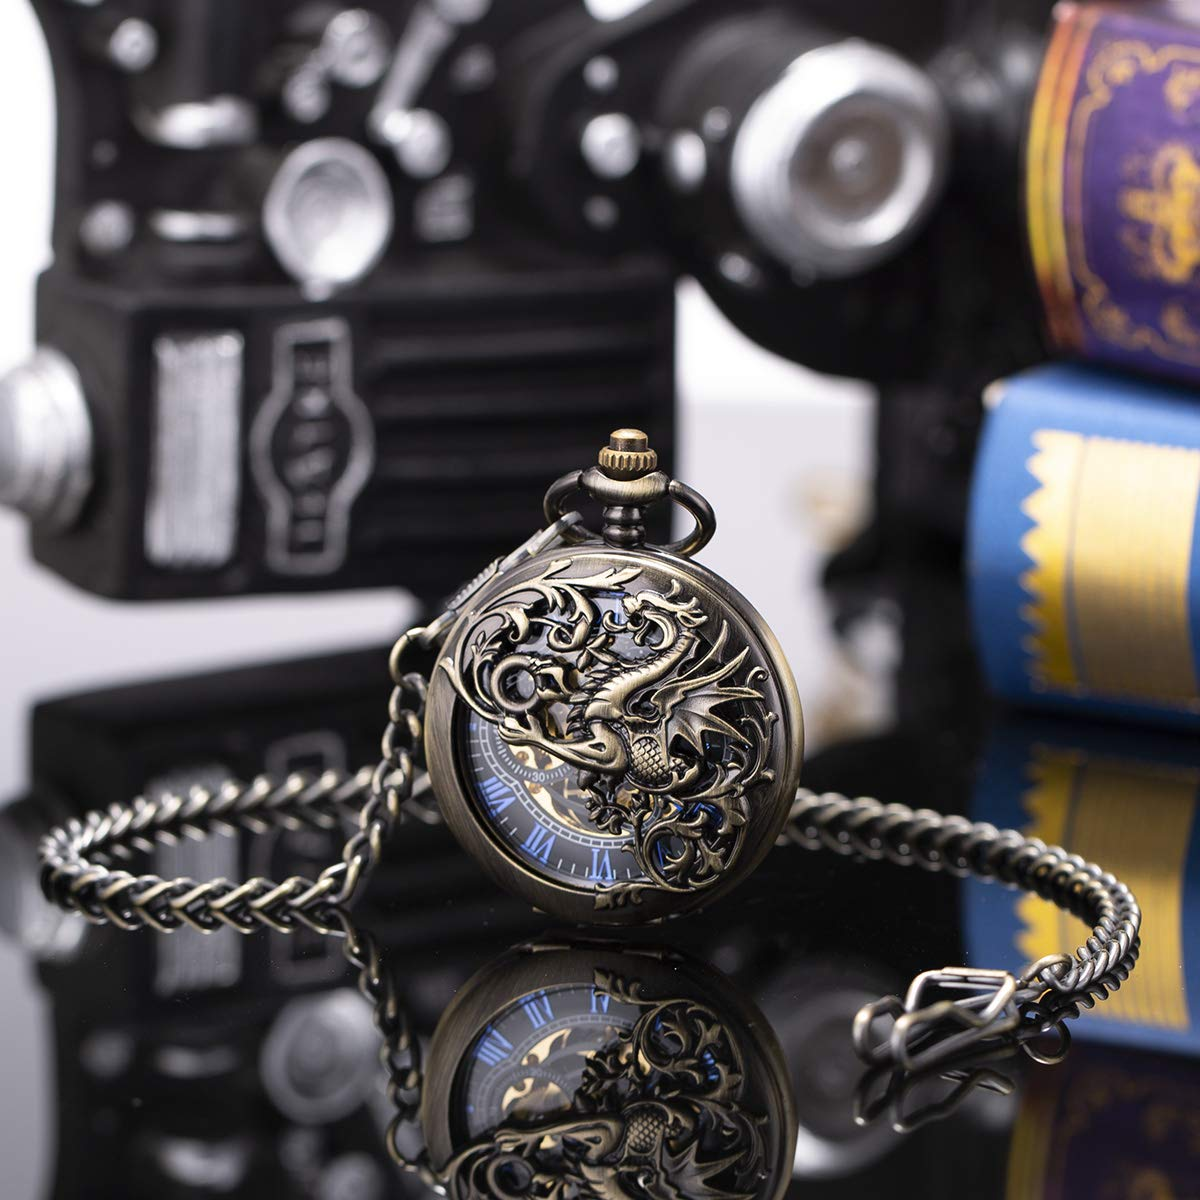 Sibosun dragon draken steam punk en cosplay zakhorloge